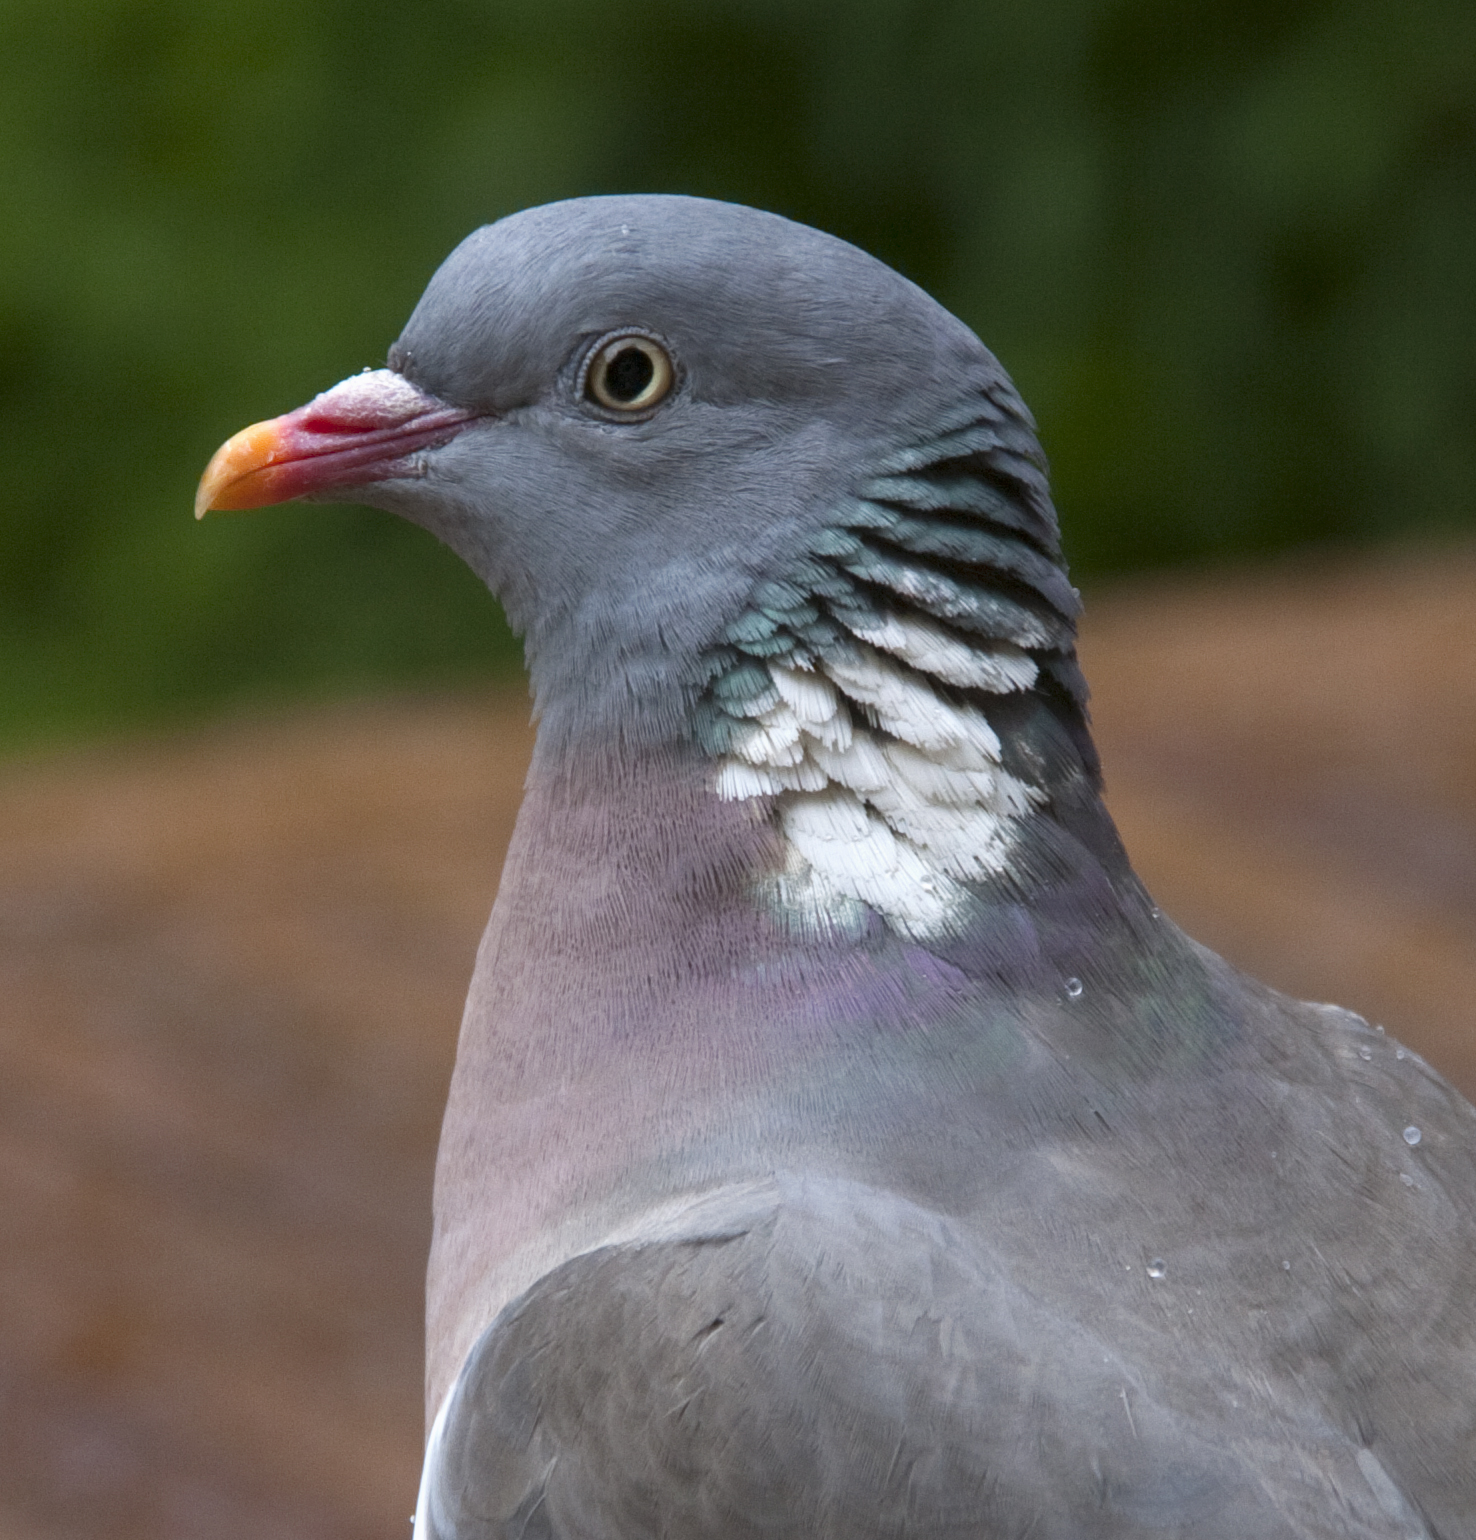 https://upload.wikimedia.org/wikipedia/commons/0/0e/Columba_palumbus_-Quinton%2C_Birmingham%2C_England_-head-8.jpg